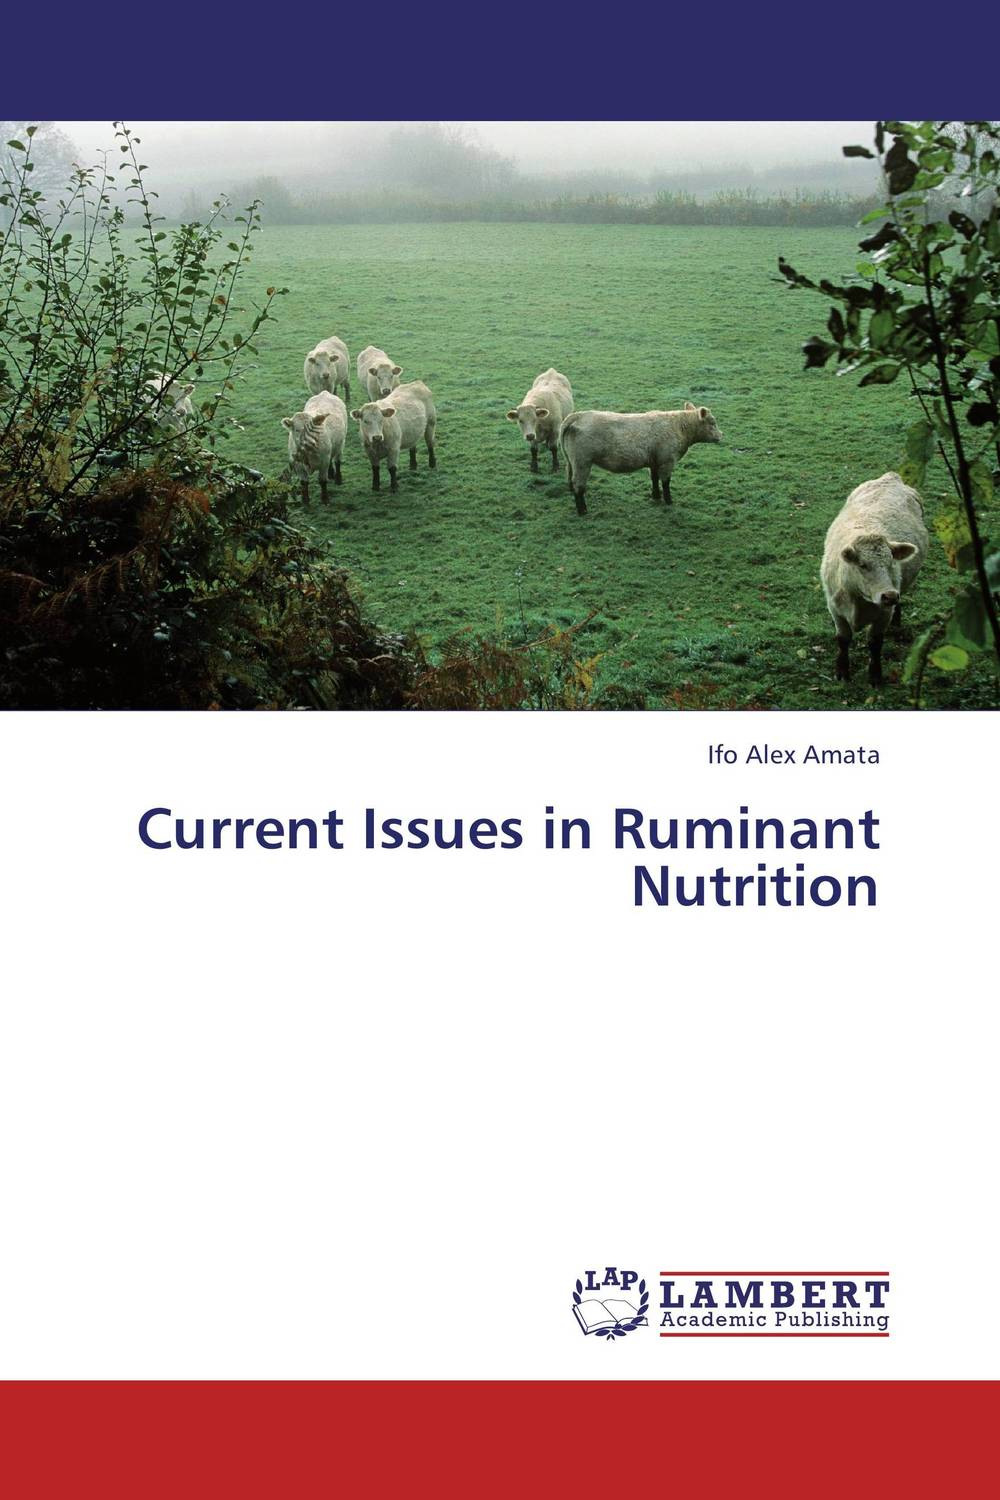 Current Issues in Ruminant Nutrition seeing things as they are